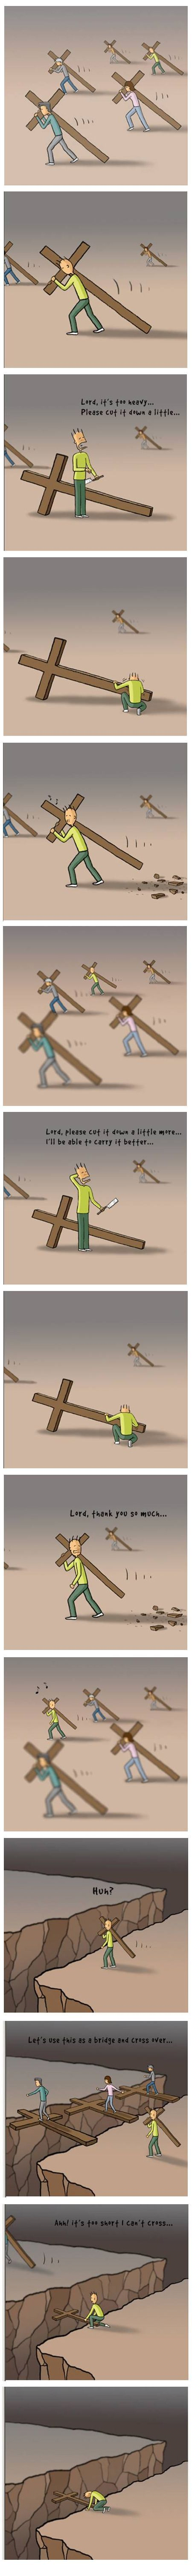 Being a good Christian means carrying your daily cross, and man is it heavy! What seems like a burden today, might be a blessing in the future.